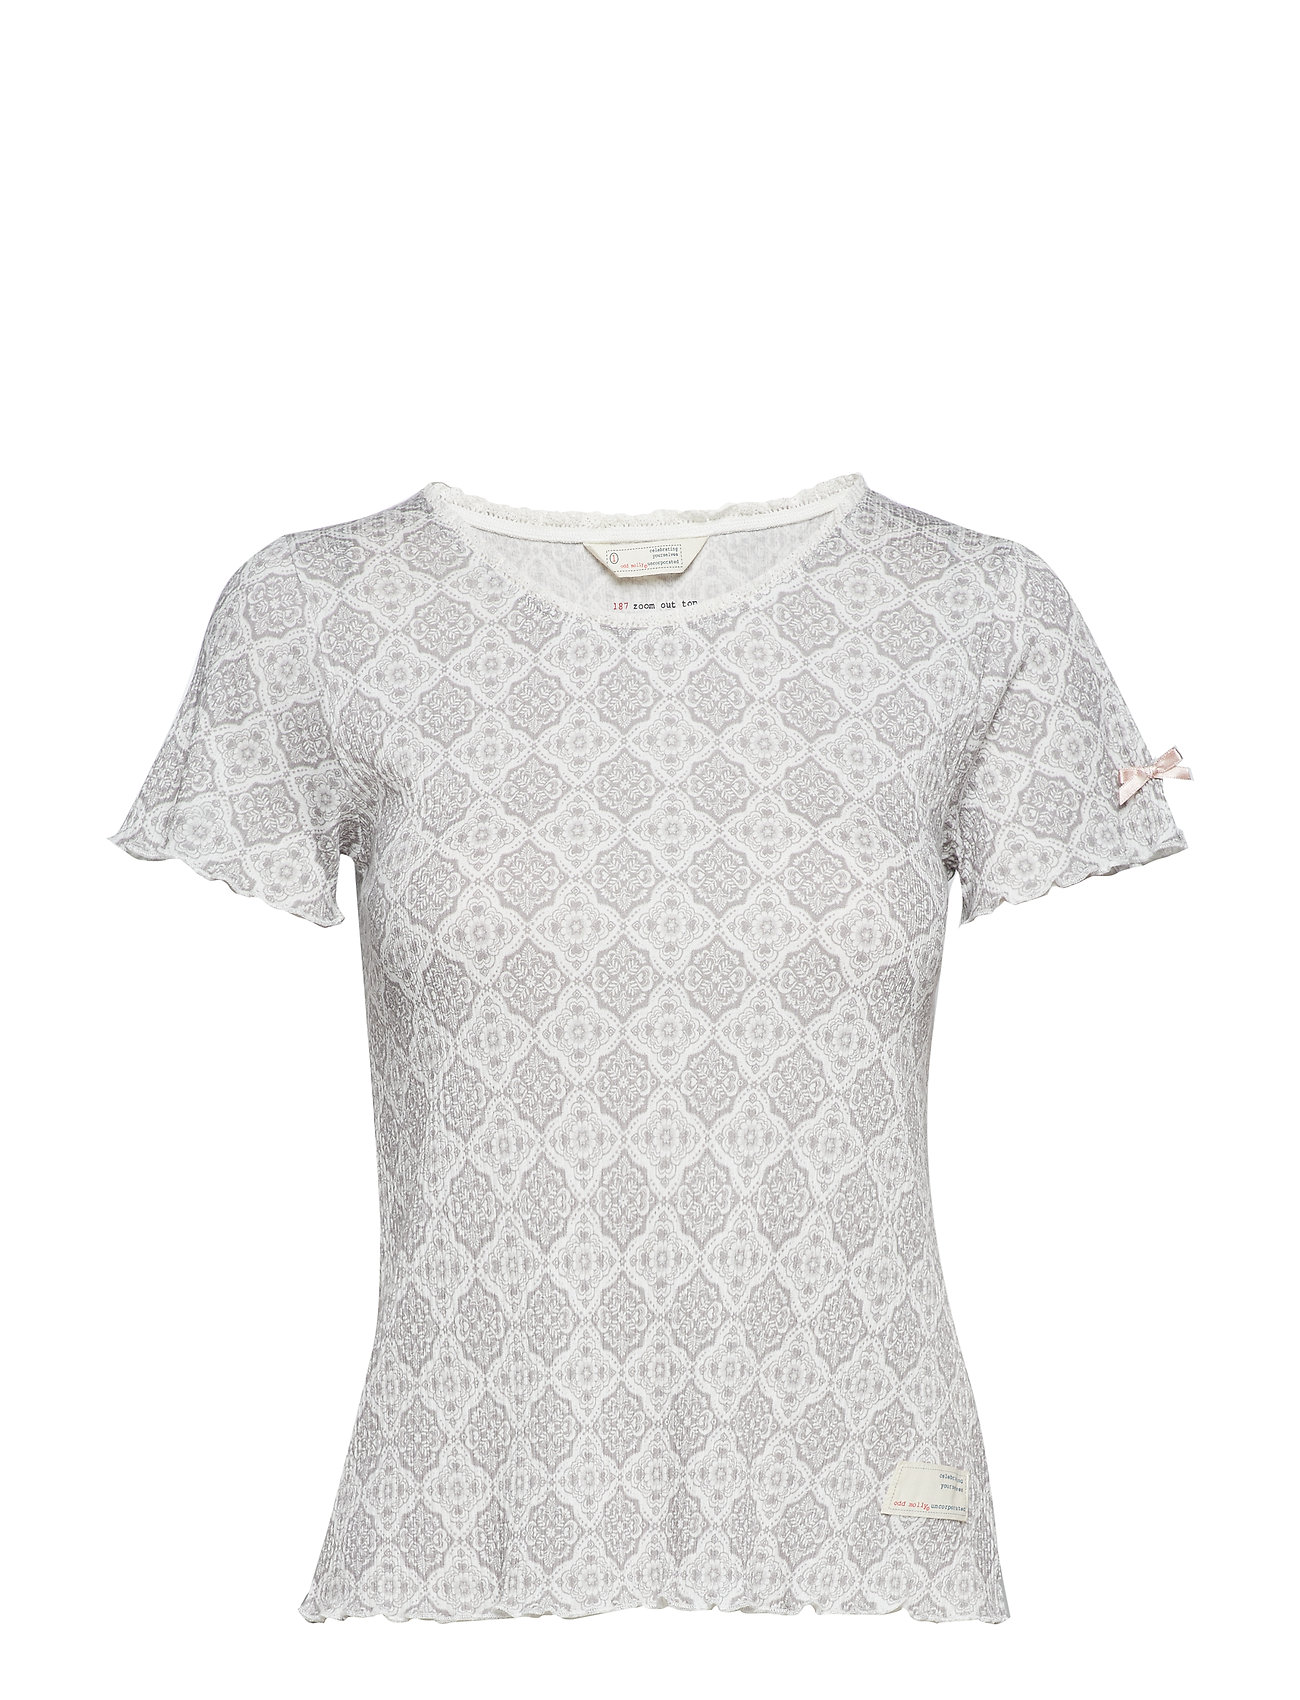 ODD MOLLY zoom out top - MID GREY